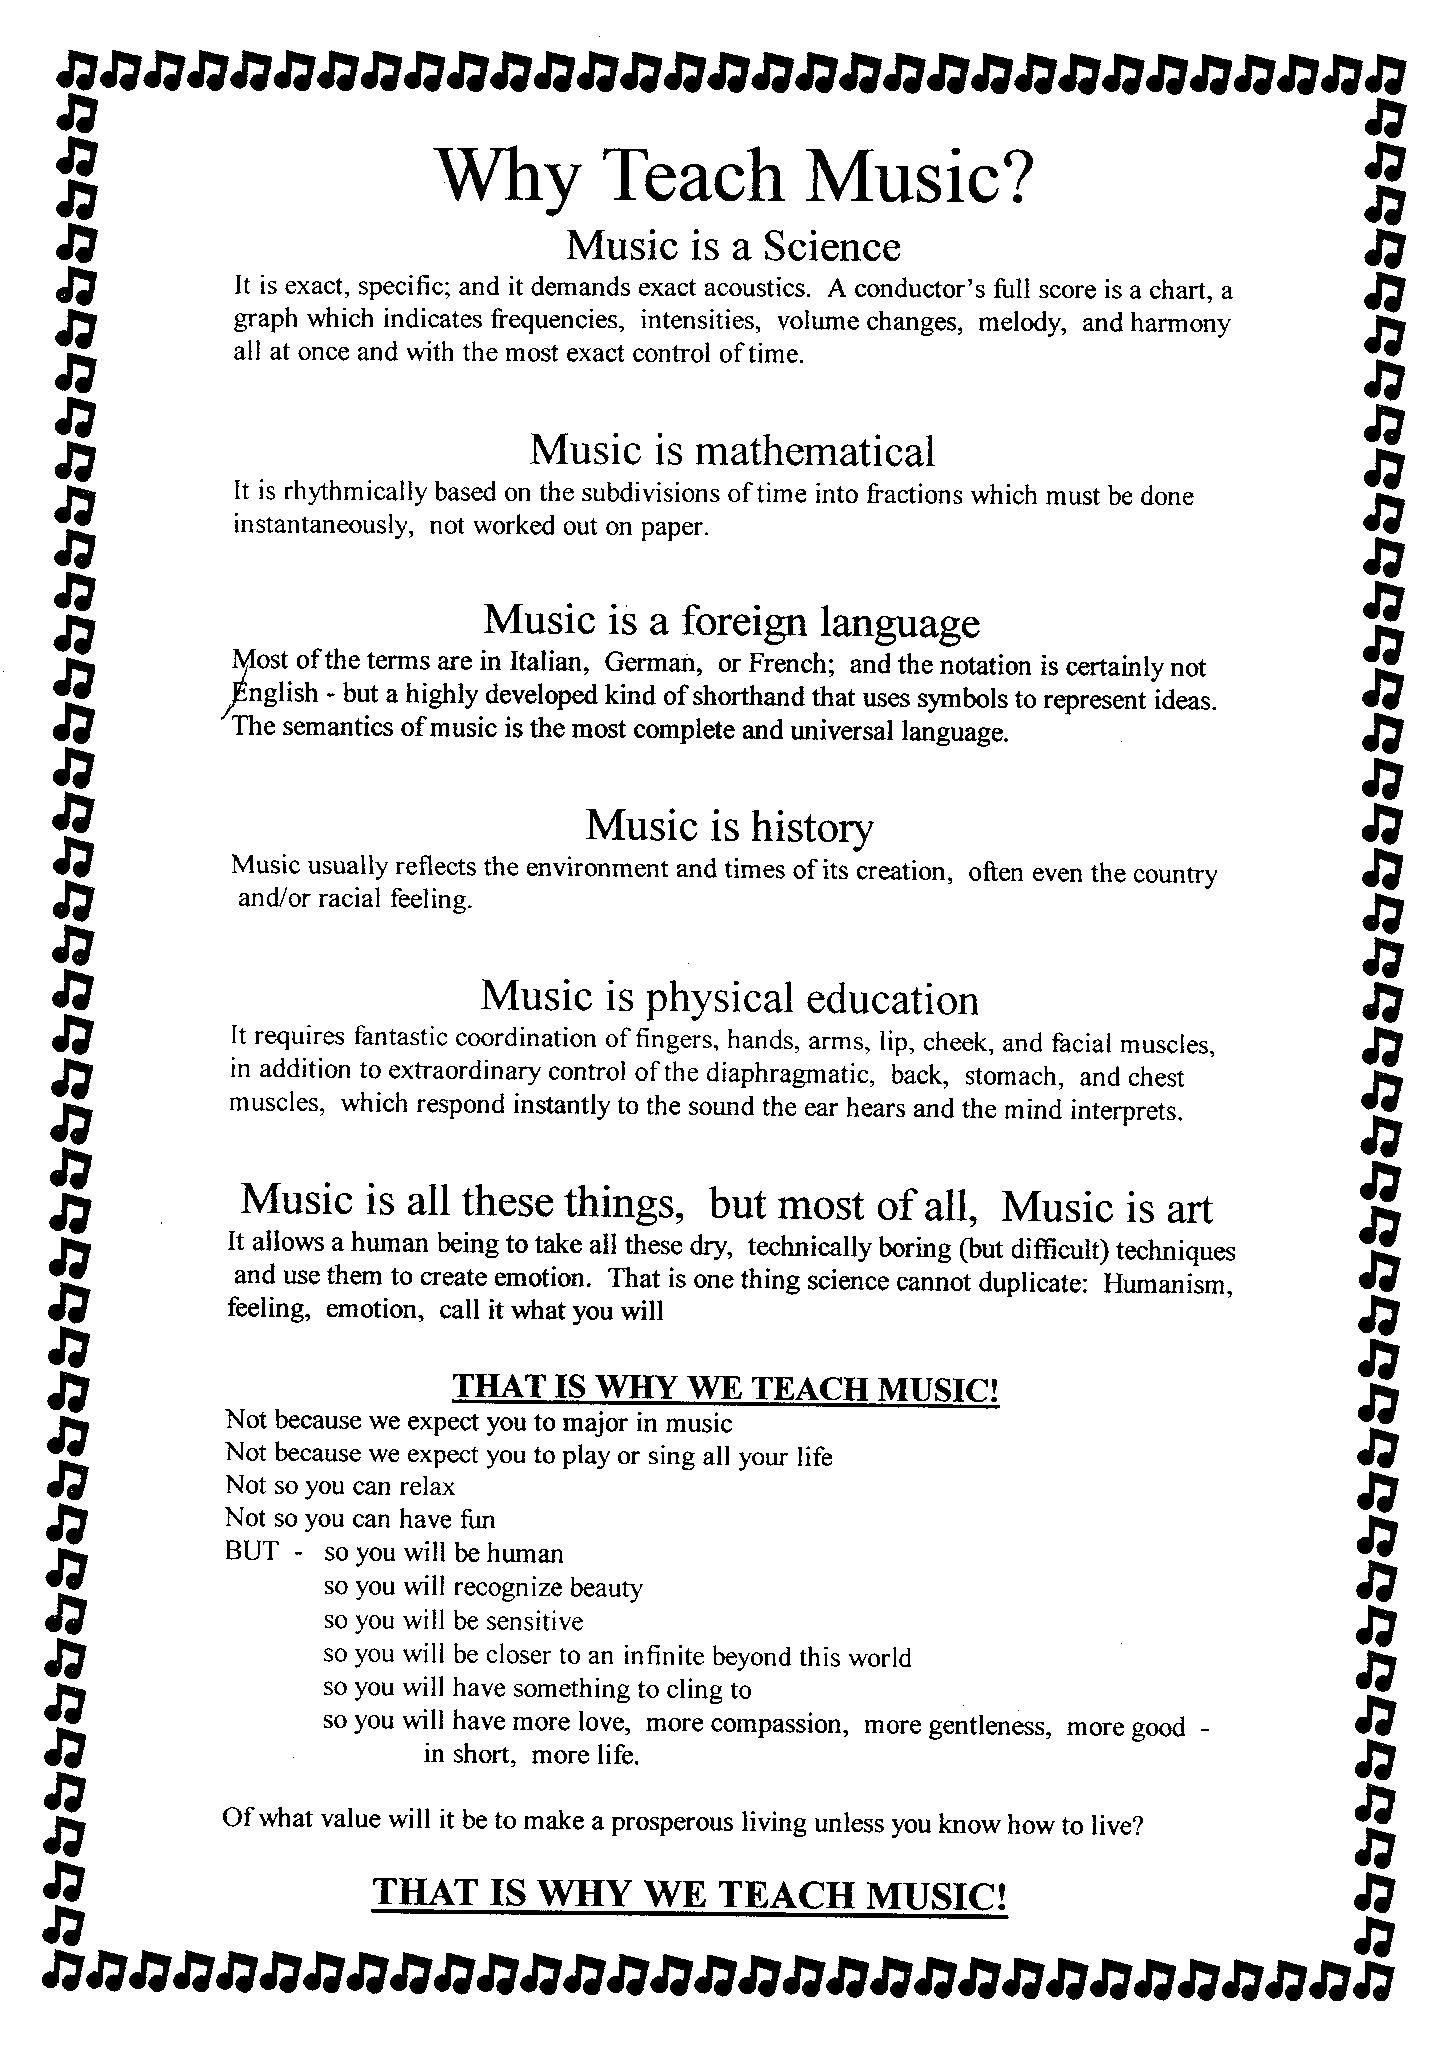 I Dont Like When People Justify Teaching Music By Saying It Makes